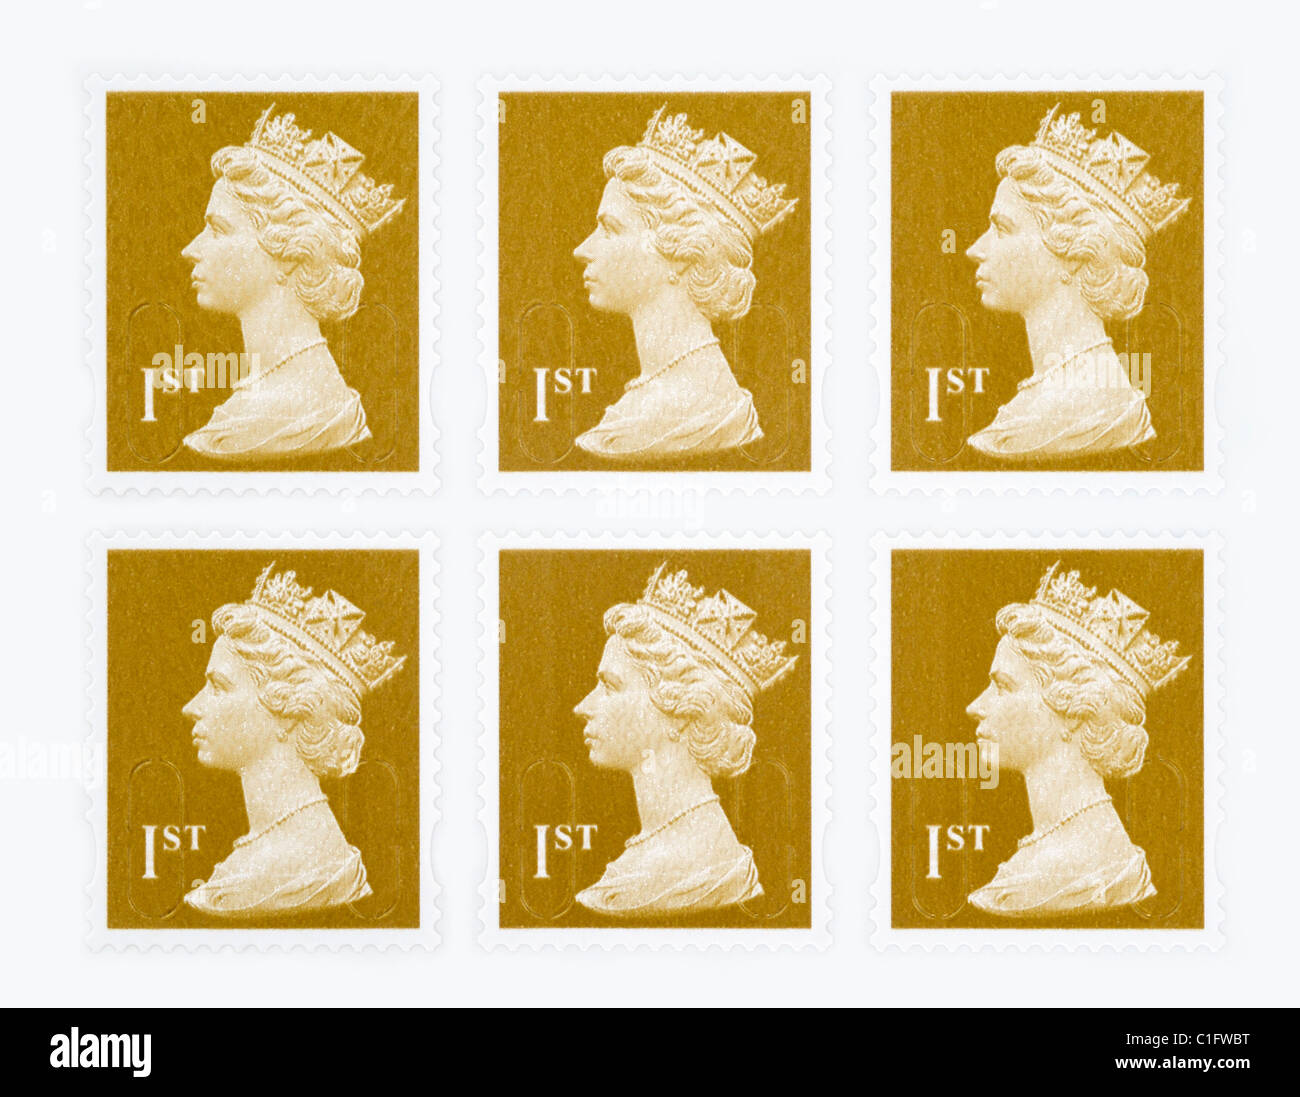 UK Royal Mail First class postage stamps - Stock Image